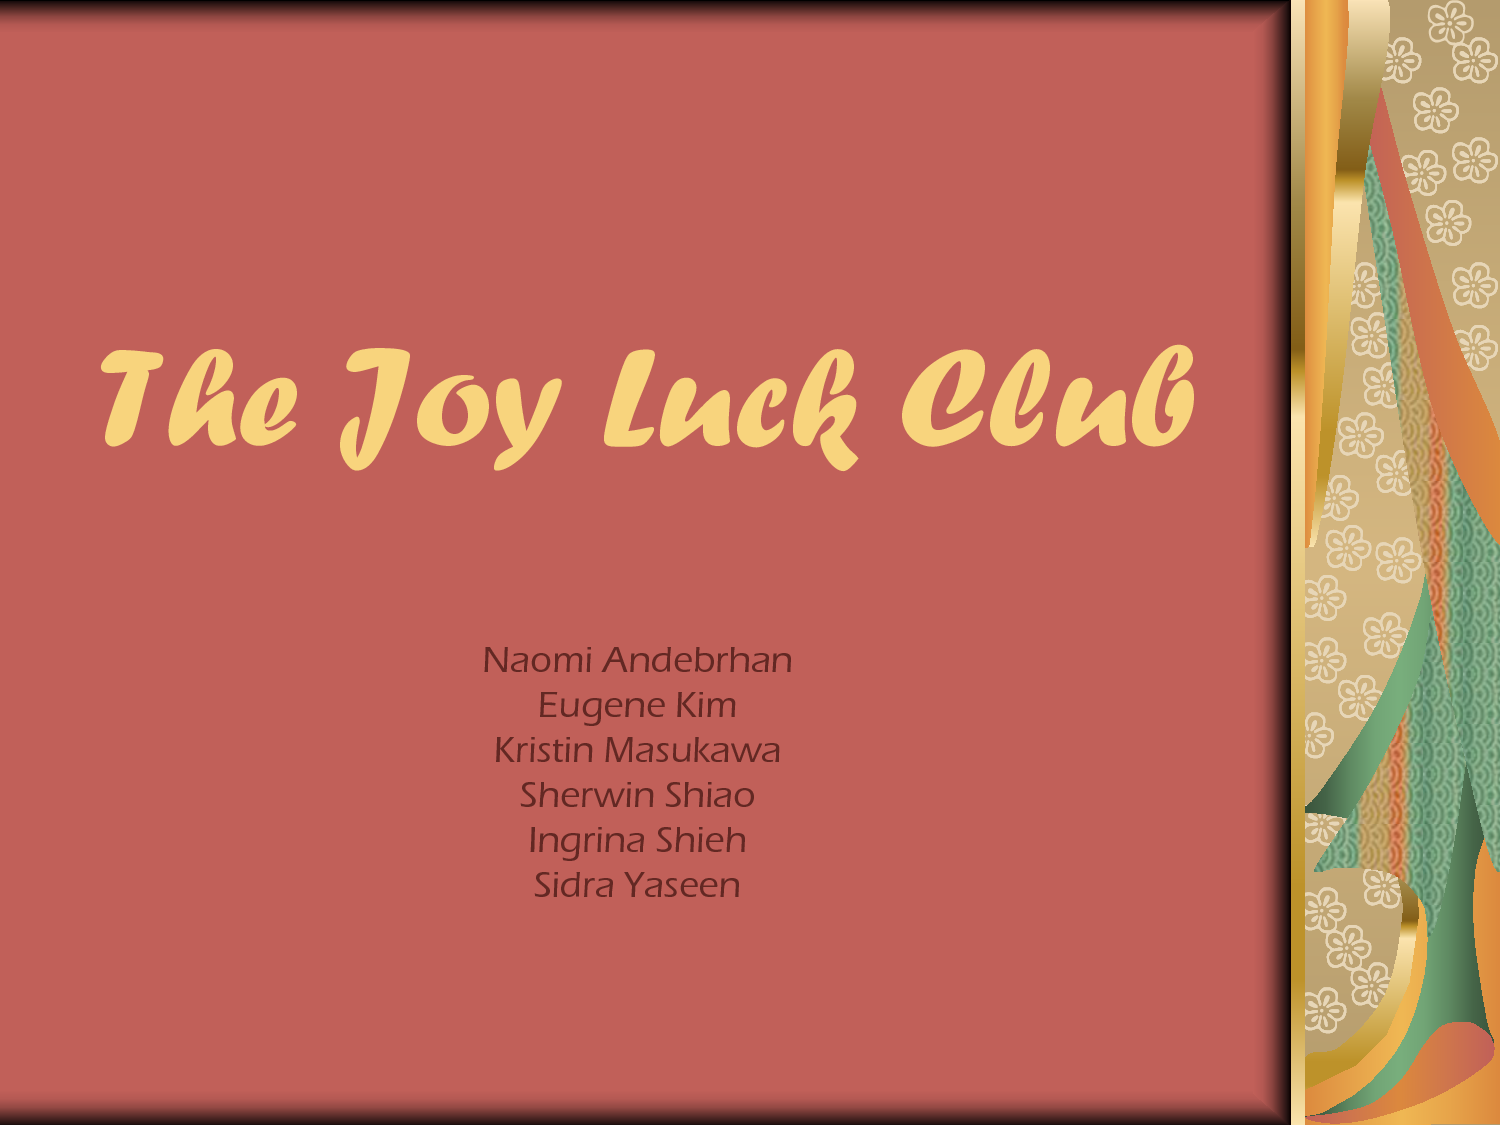 essays from the joy luck club Essays - largest database of quality sample essays and research papers on joy luck club compare and contrast.